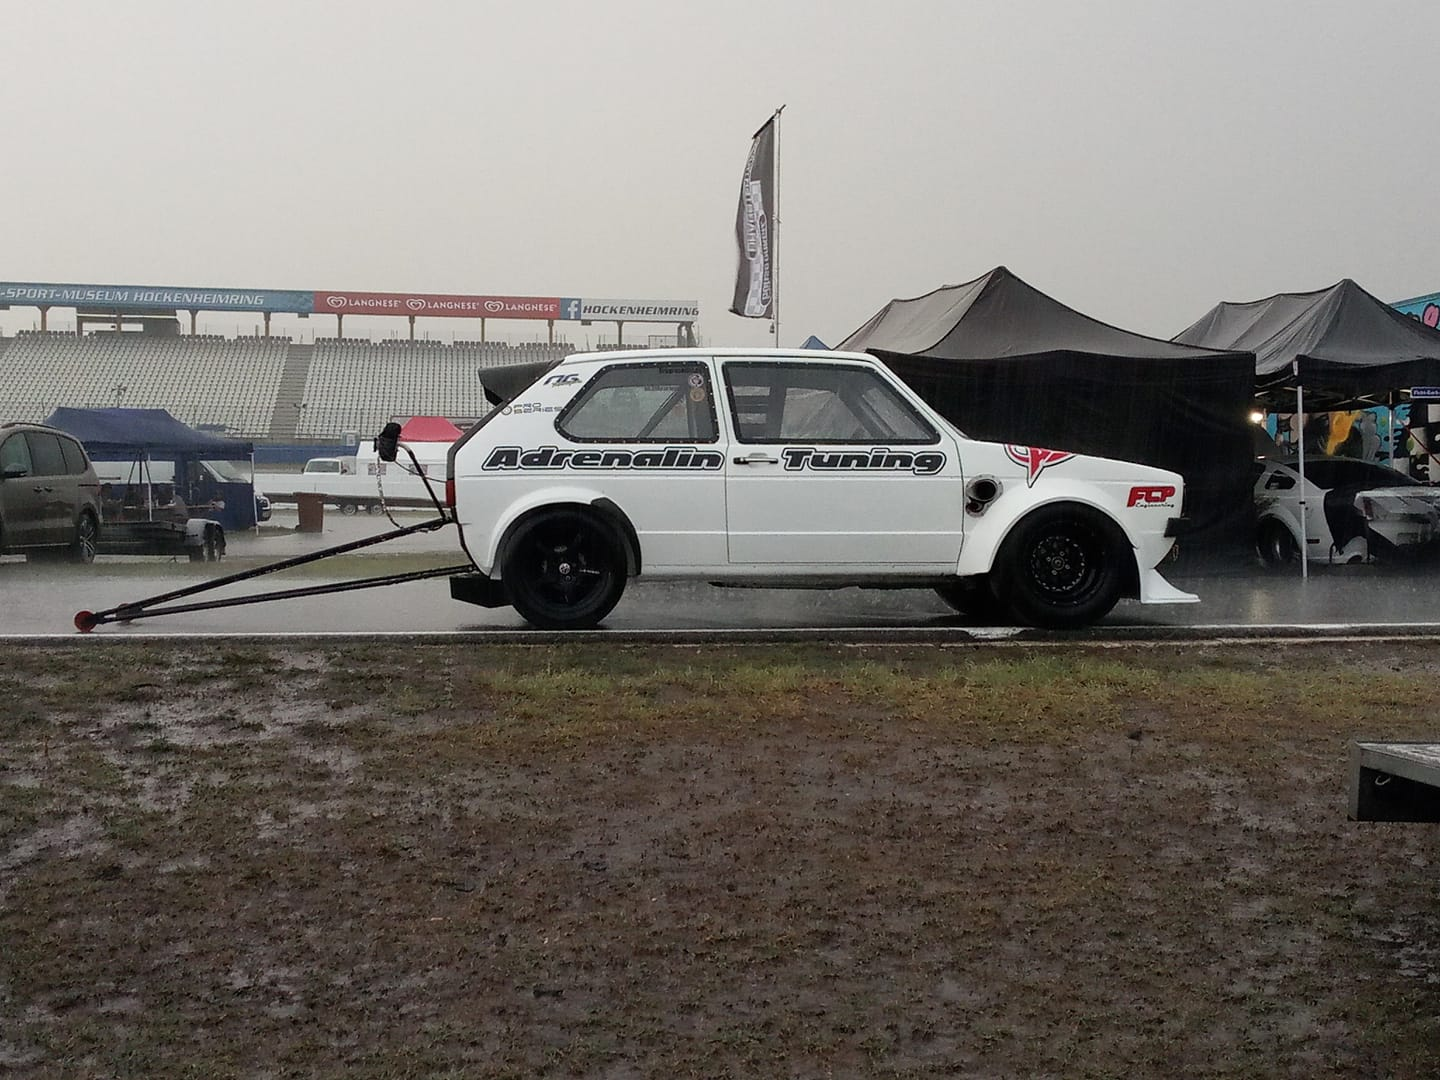 Adrenalin Tuning Golf Mk1 with a turbo 2.0 L 16v inline-four